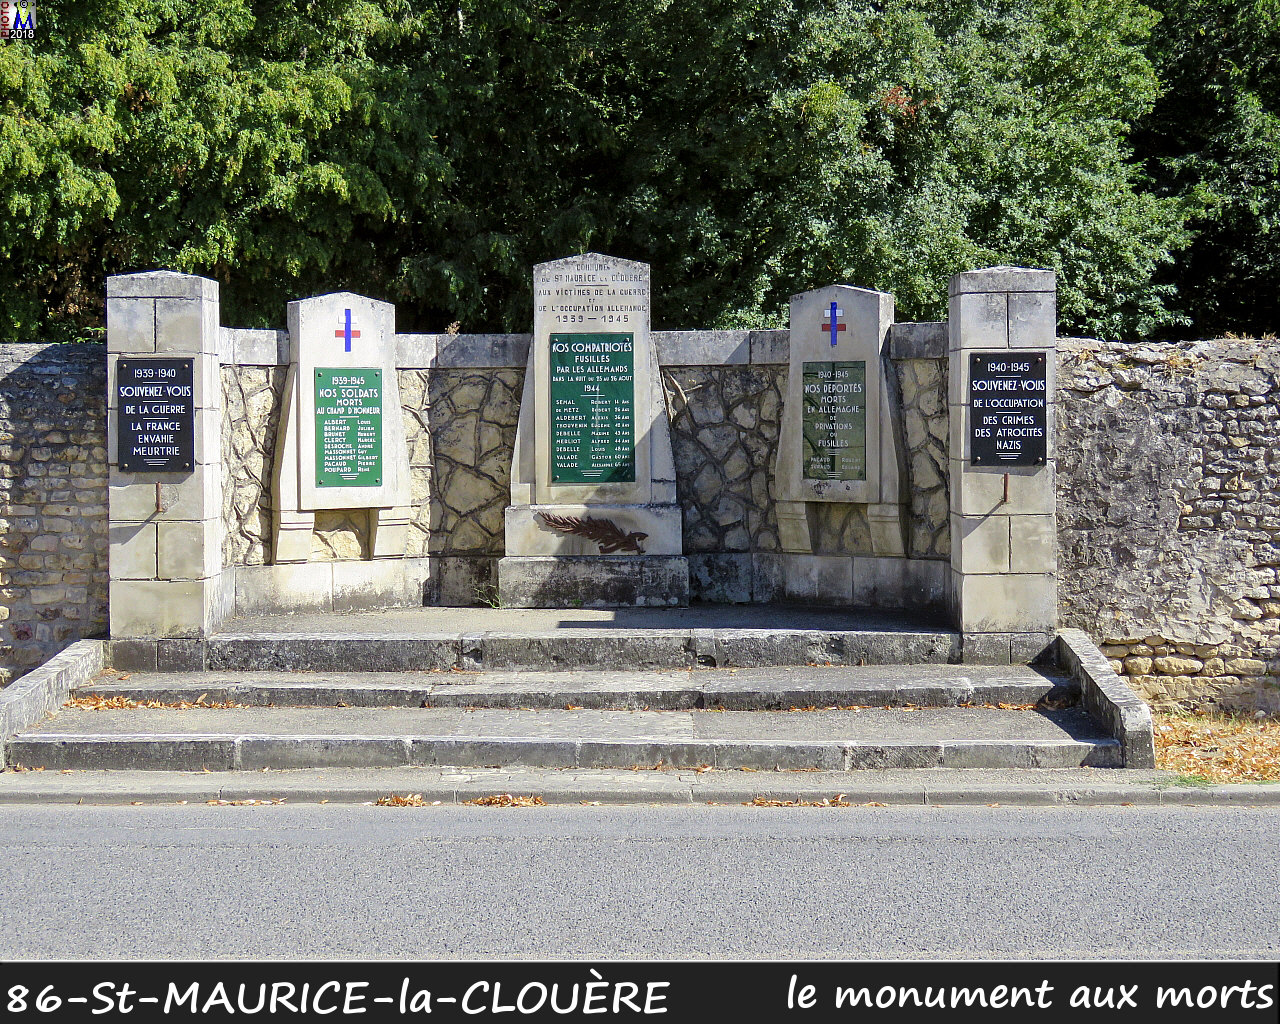 86StMAURICE-CLOUERE_morts_1000.jpg